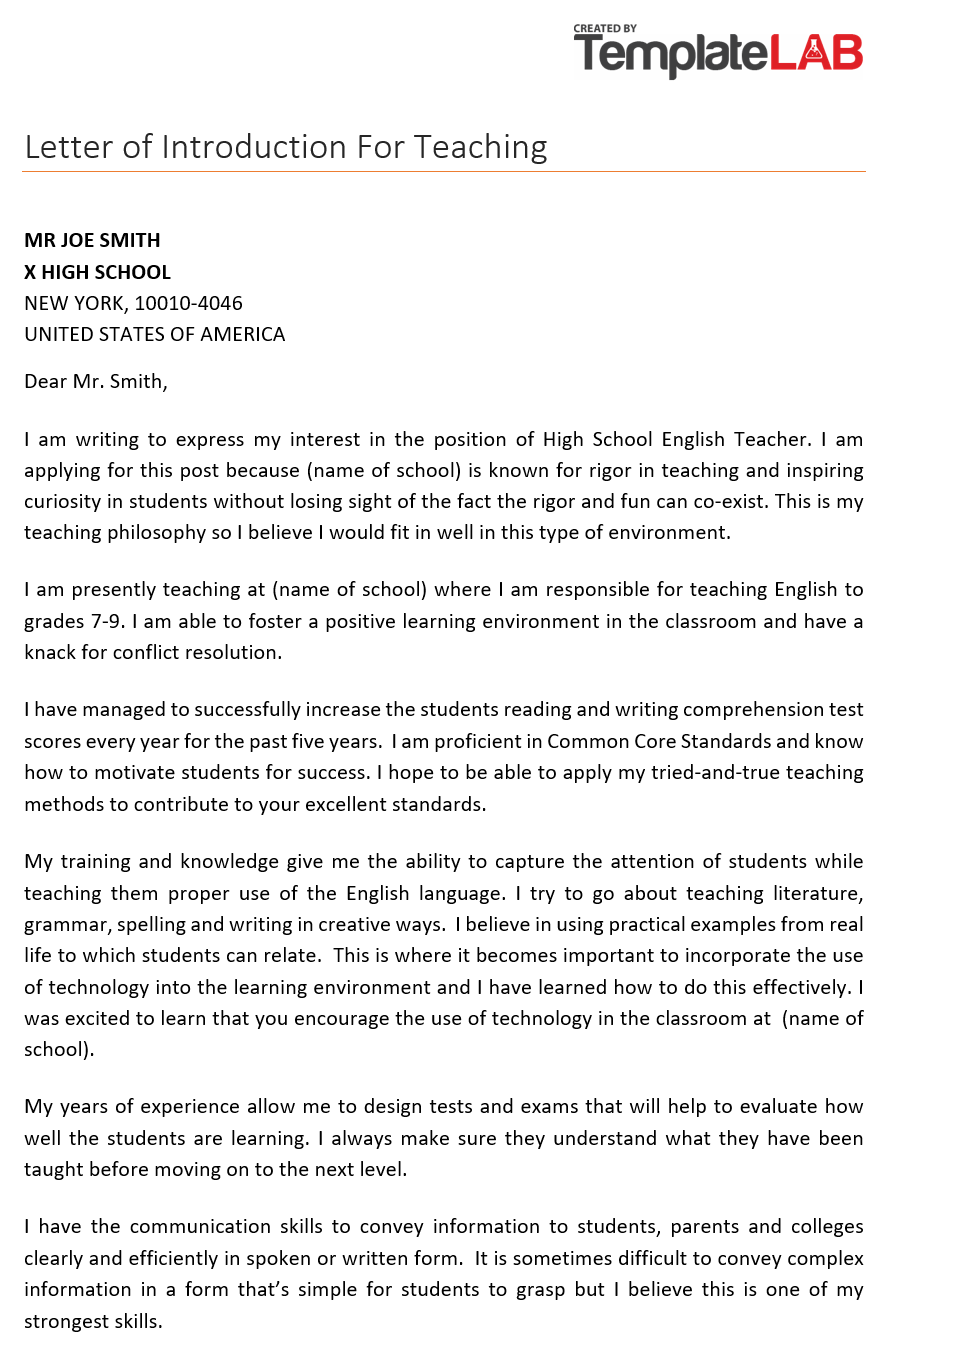 Free Letter of Introduction for Teaching 2